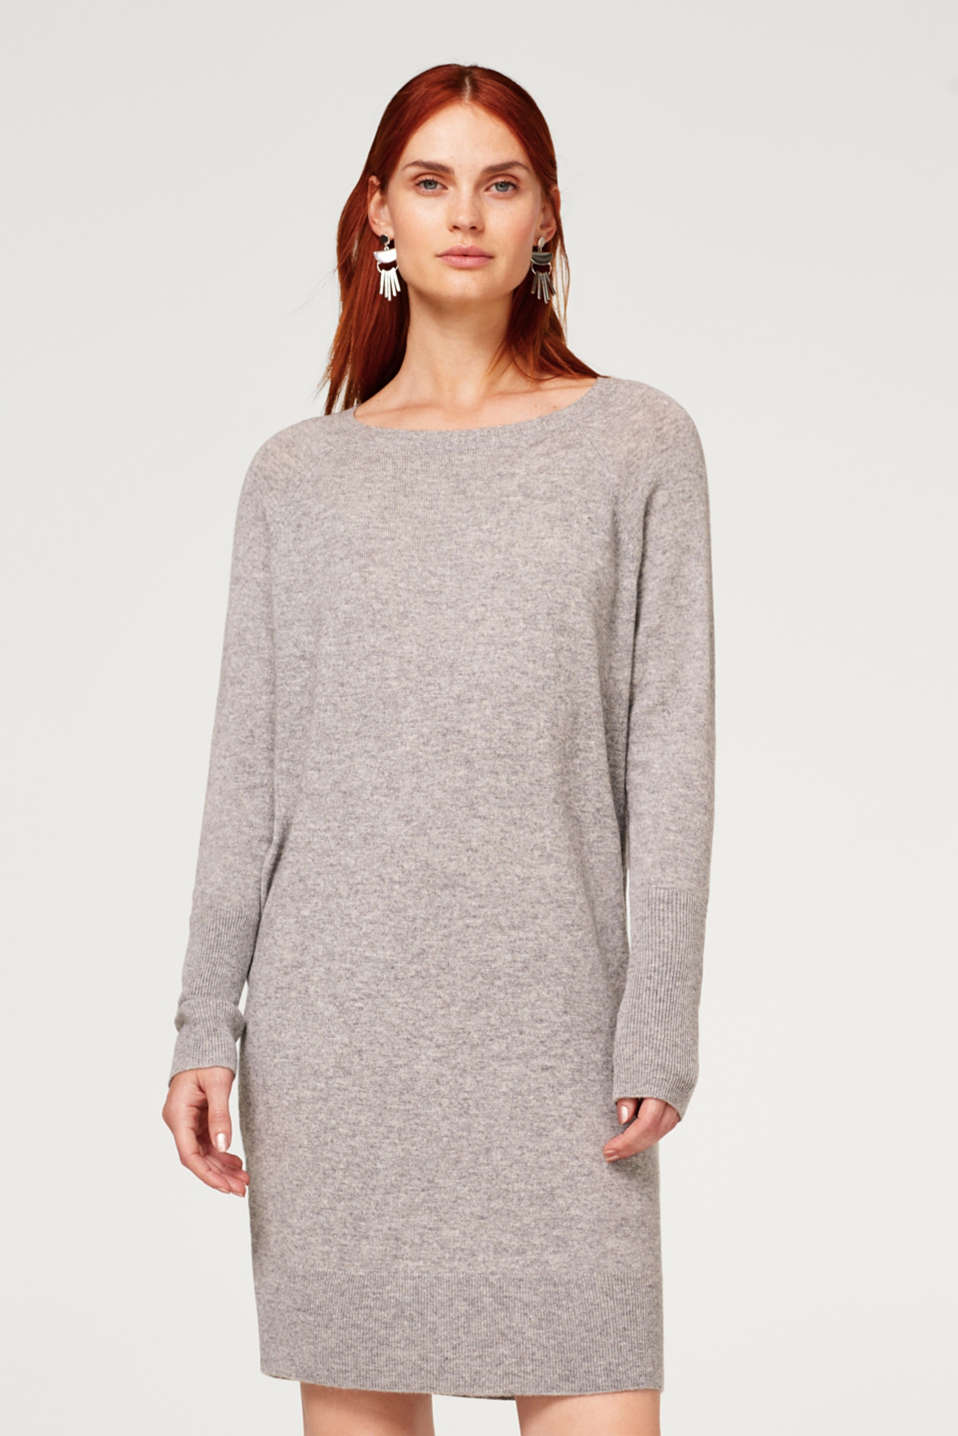 Esprit - With wool and cashmere: casual basic dress